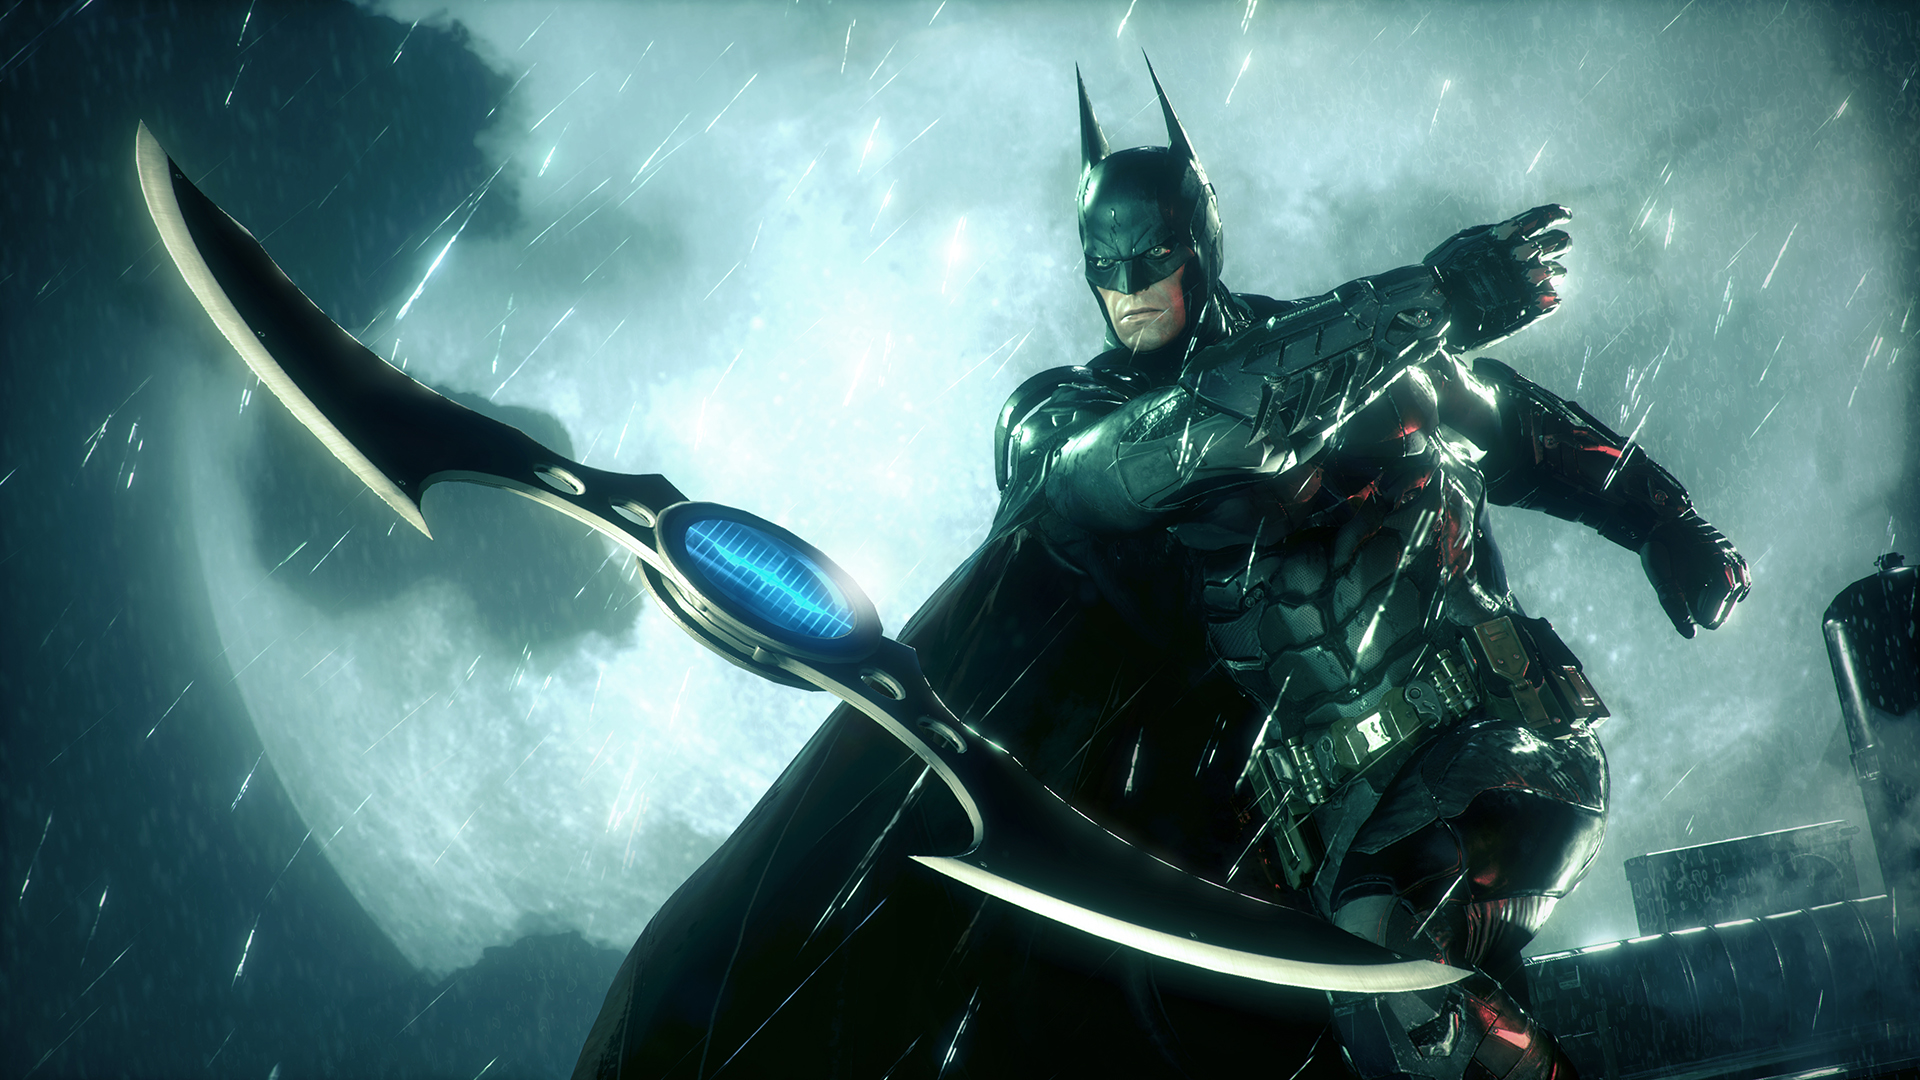 Batman: Arkham Knight on PC is a train wreck at launch